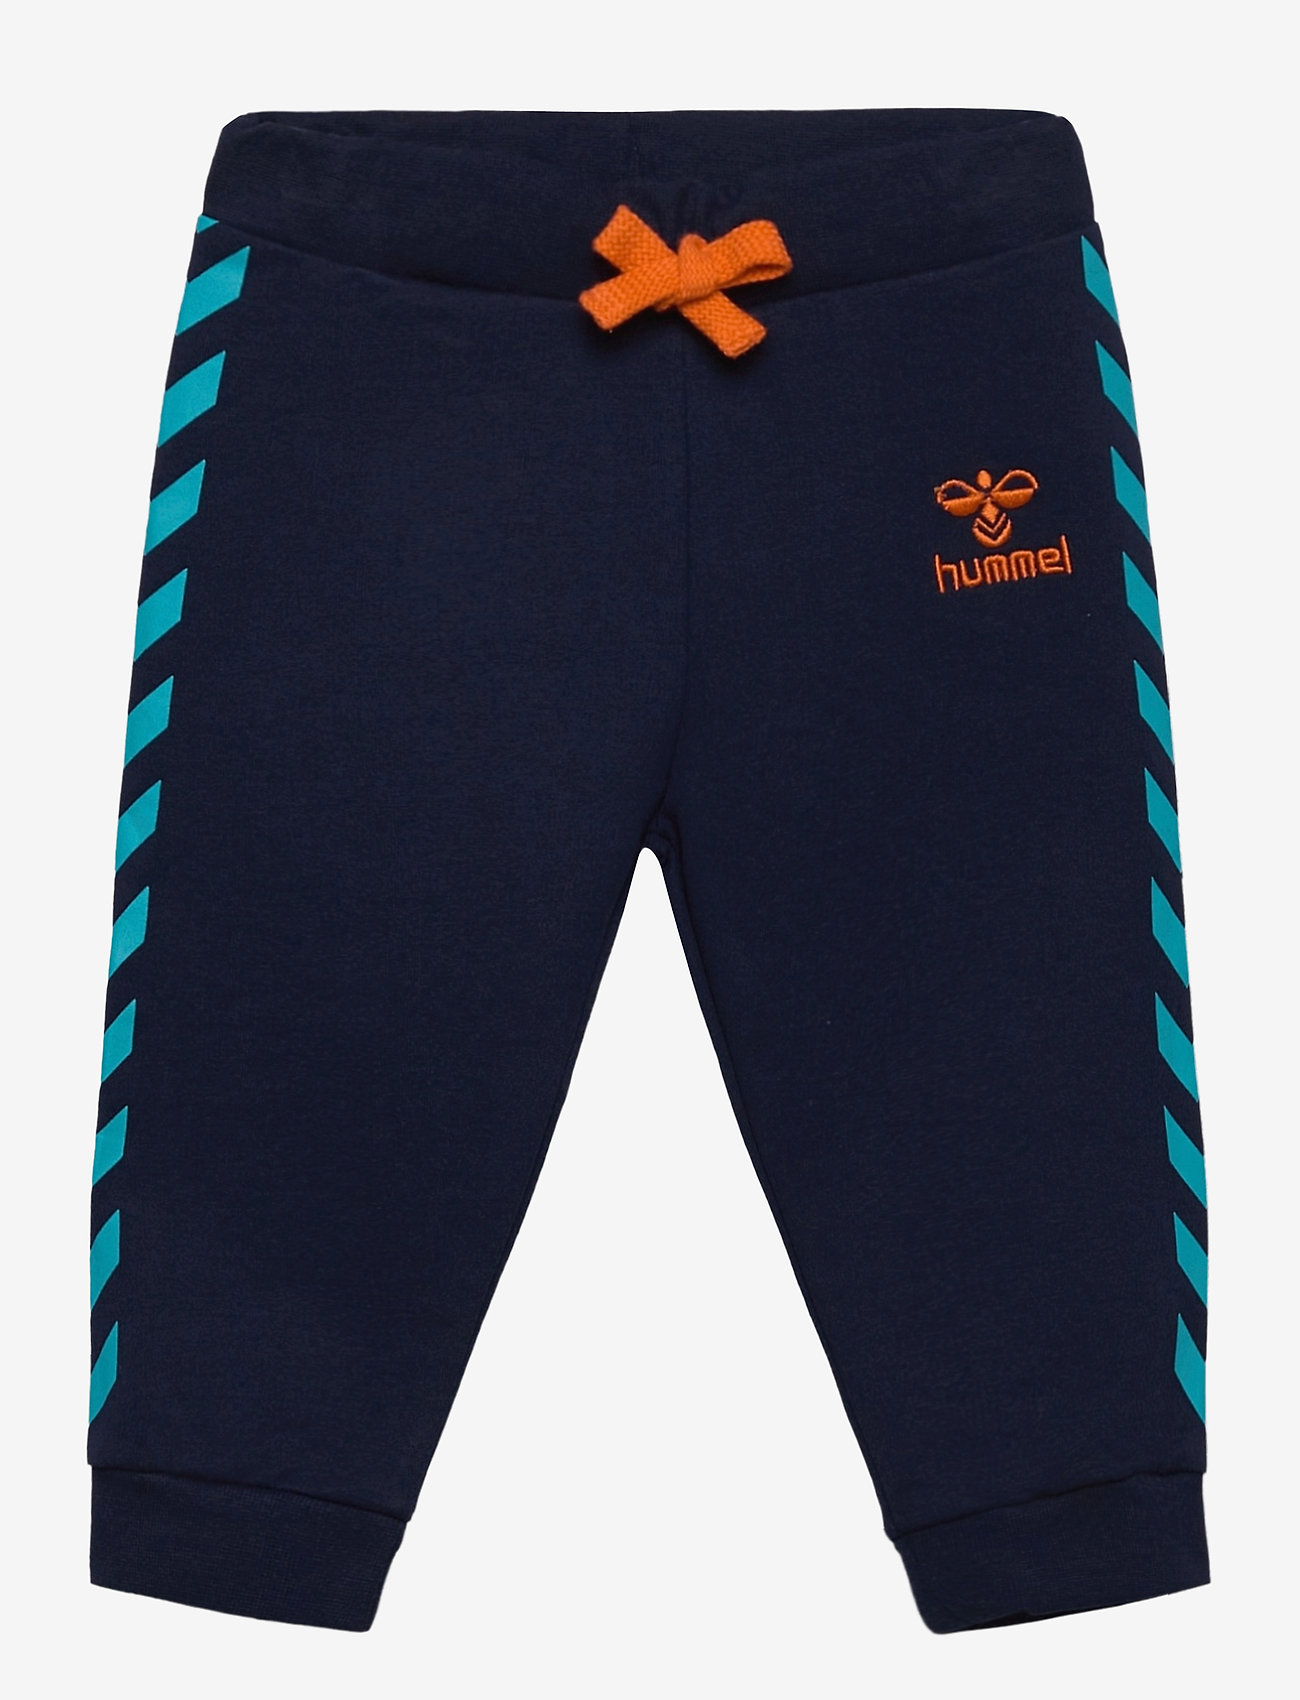 Hummel - hmlVILLADS PANTS - sweatpants - black iris - 0